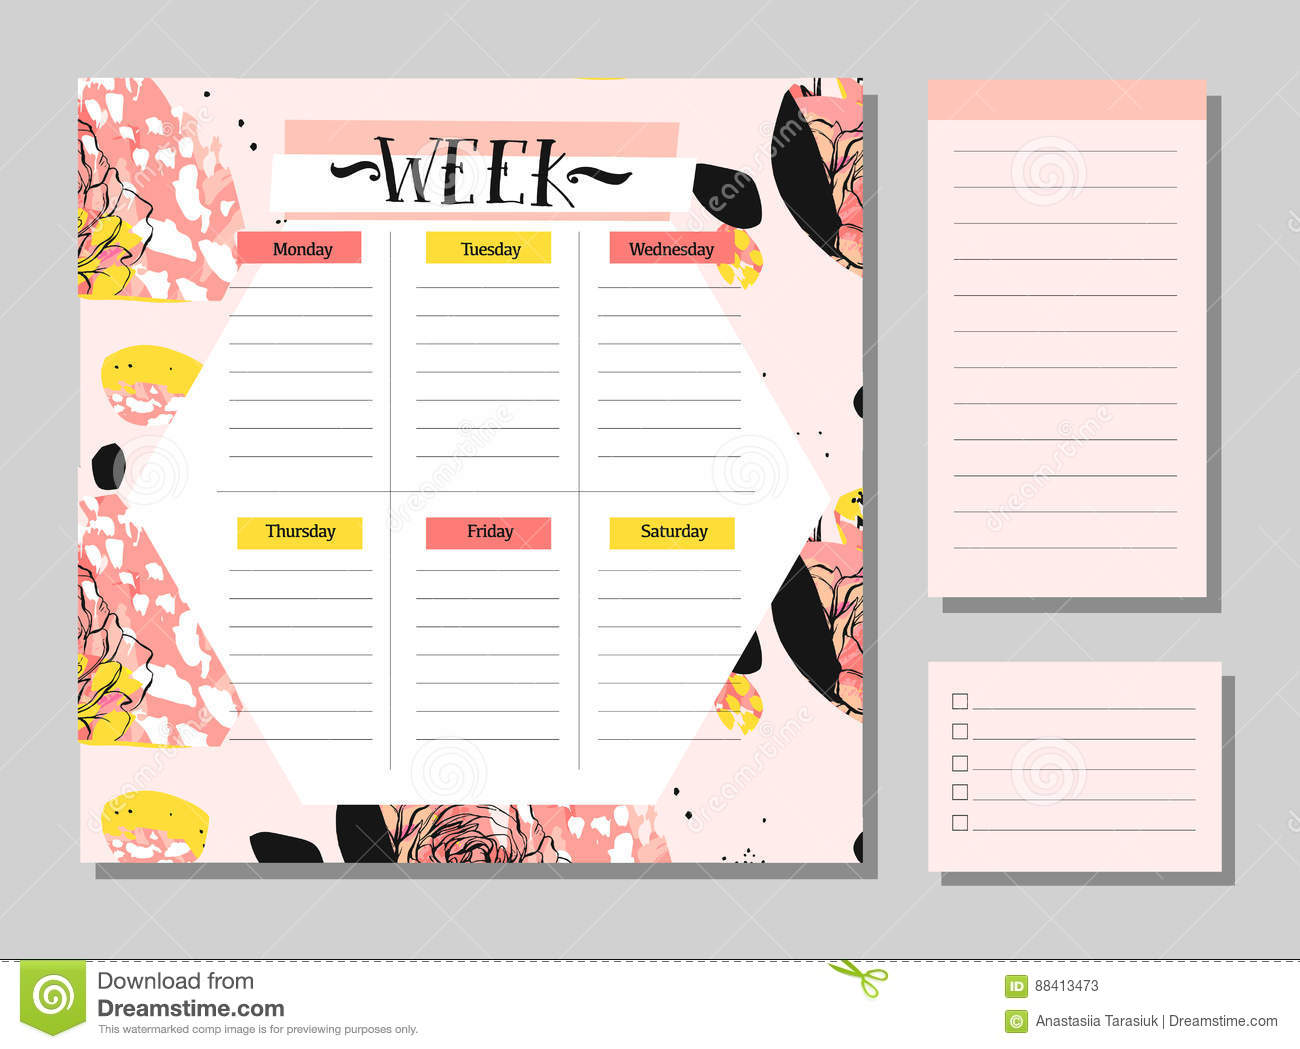 Scandinavian Weekly and Daily Planner Template. Organizer and Schedule with Notes and To Do List. Vector.